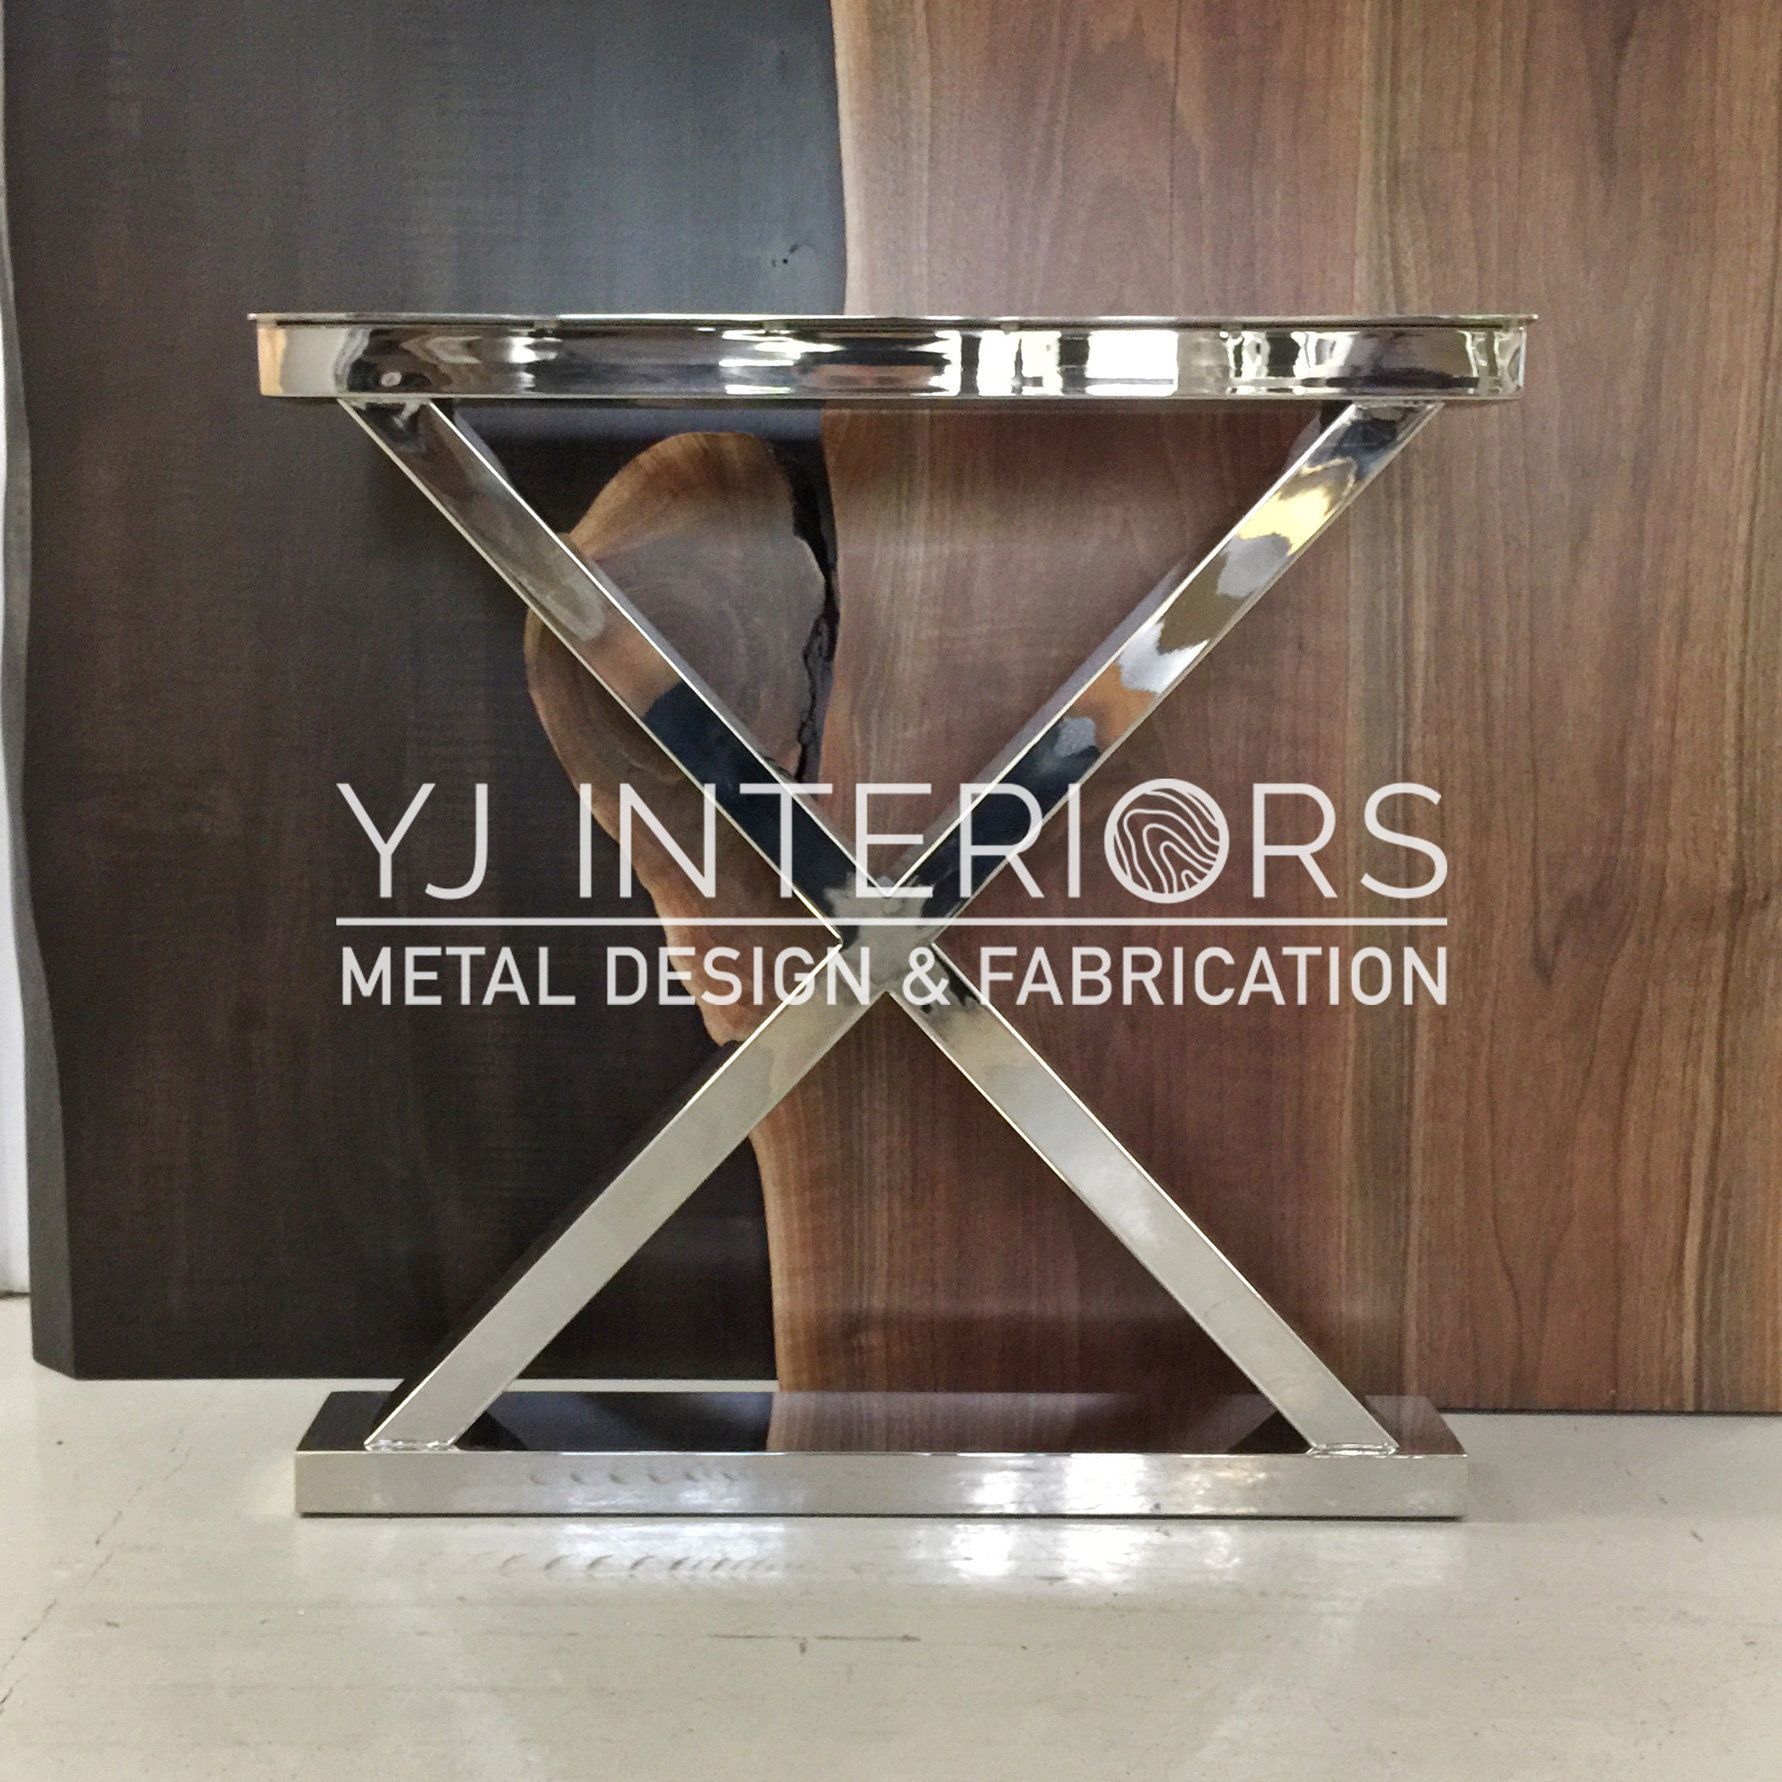 The X Polished Chrome Mirror Finish Stainless Steel Metal Table